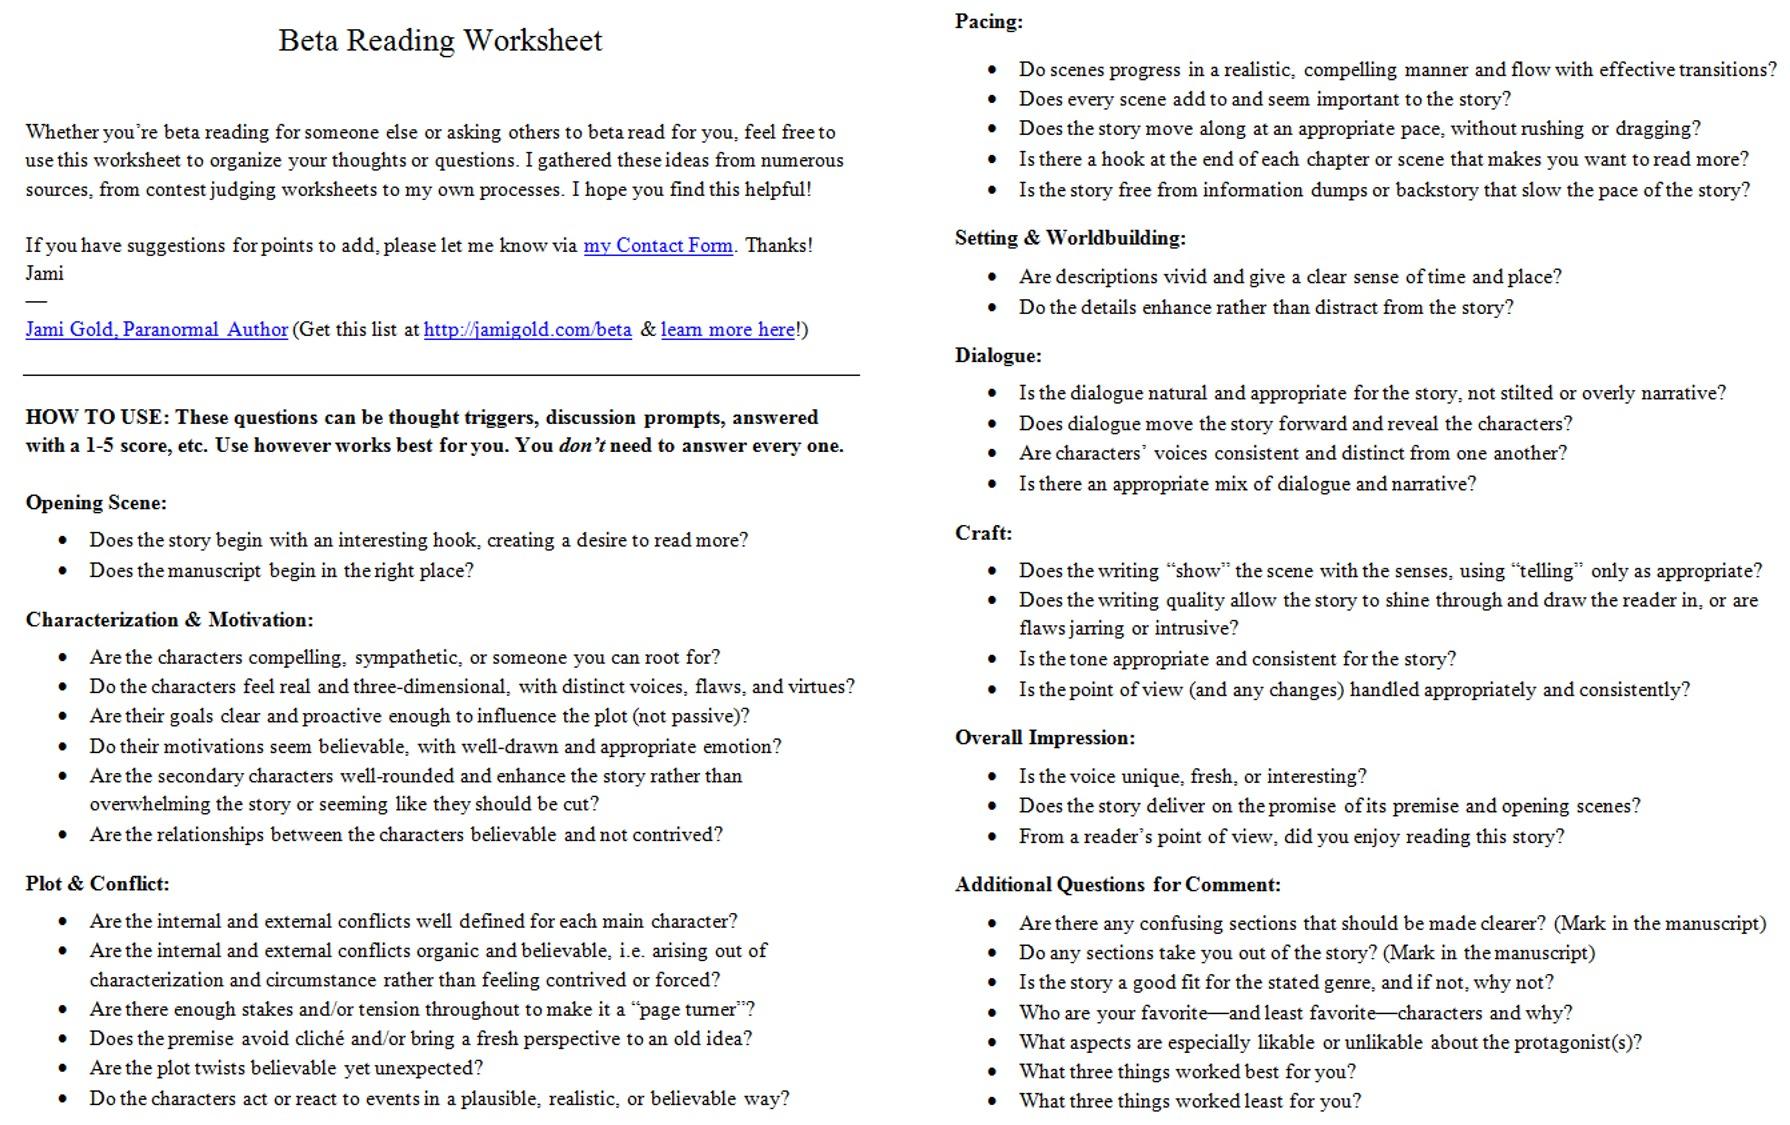 Aldiablosus  Picturesque Worksheets For Writers  Jami Gold Paranormal Author With Fascinating Screen Shot Of The Twopage Beta Reading Worksheet With Amusing Free Phonics Worksheets For St Grade Also Real Numbers Worksheets In Addition Evaporation Worksheet And Free Printable Area And Perimeter Worksheets As Well As Solubility Curve Worksheet With Answers Additionally Science Movie Worksheet From Jamigoldcom With Aldiablosus  Fascinating Worksheets For Writers  Jami Gold Paranormal Author With Amusing Screen Shot Of The Twopage Beta Reading Worksheet And Picturesque Free Phonics Worksheets For St Grade Also Real Numbers Worksheets In Addition Evaporation Worksheet From Jamigoldcom